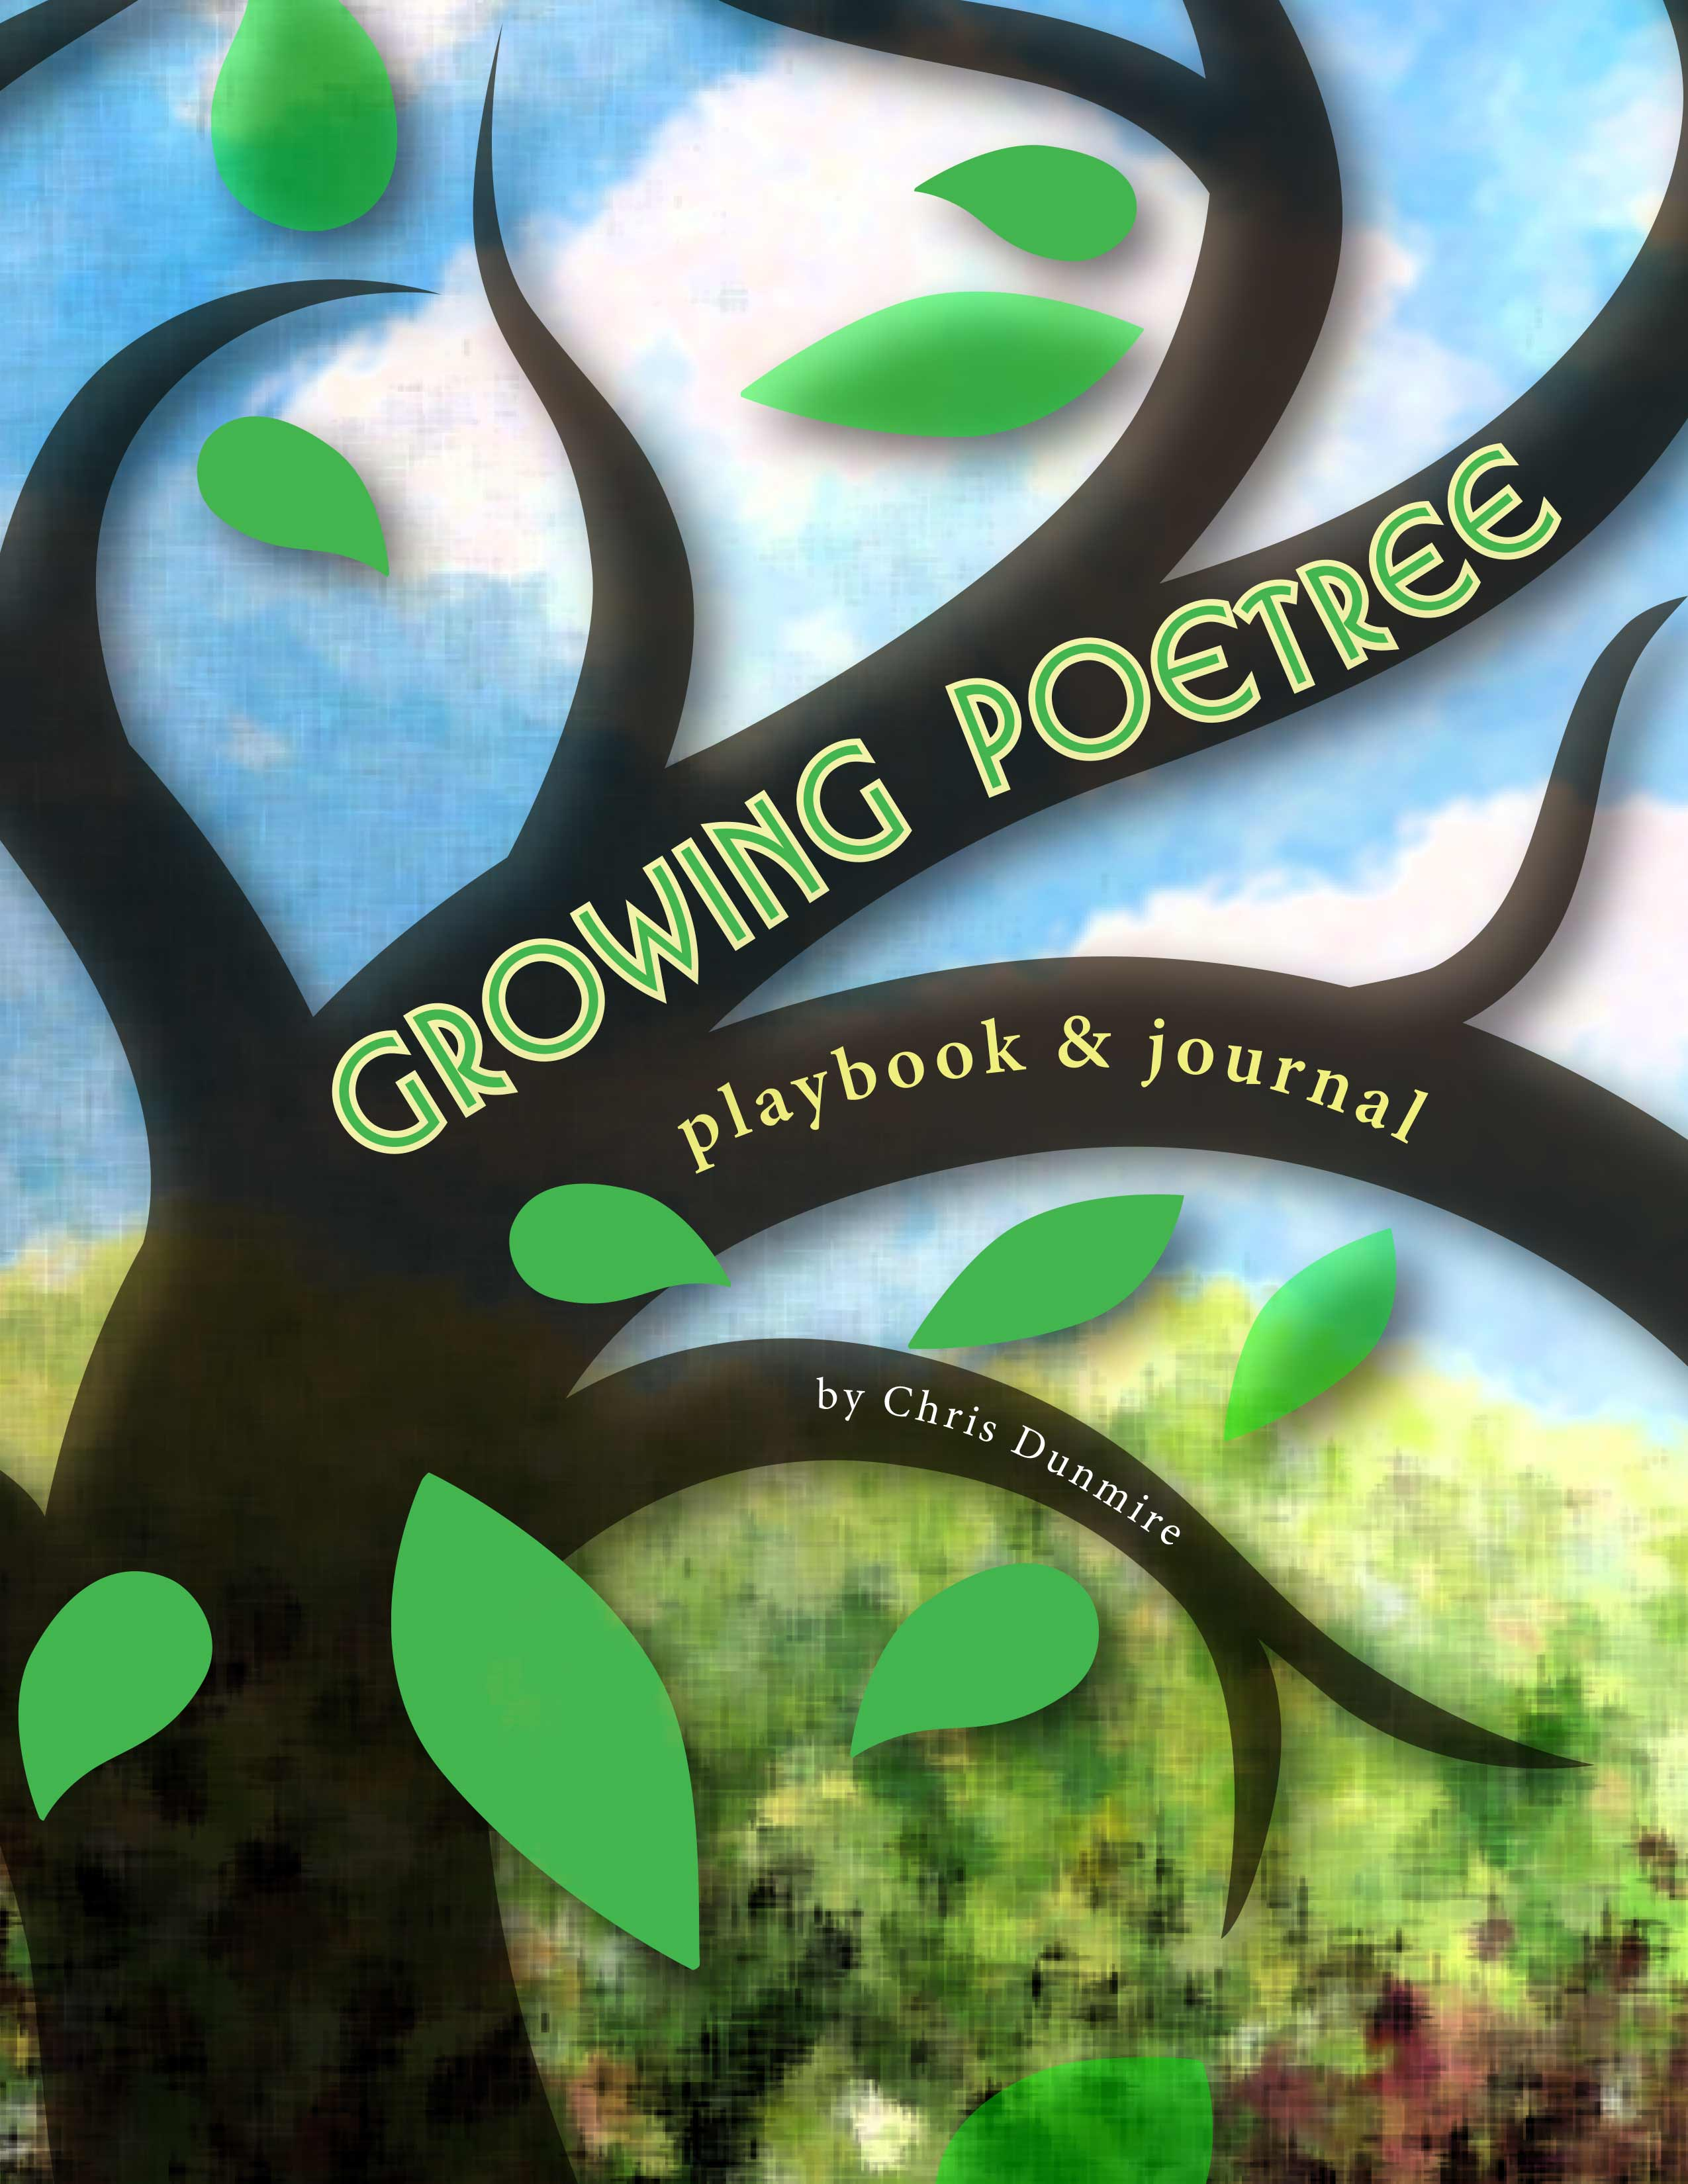 Growing Poetree Playbook and Journal